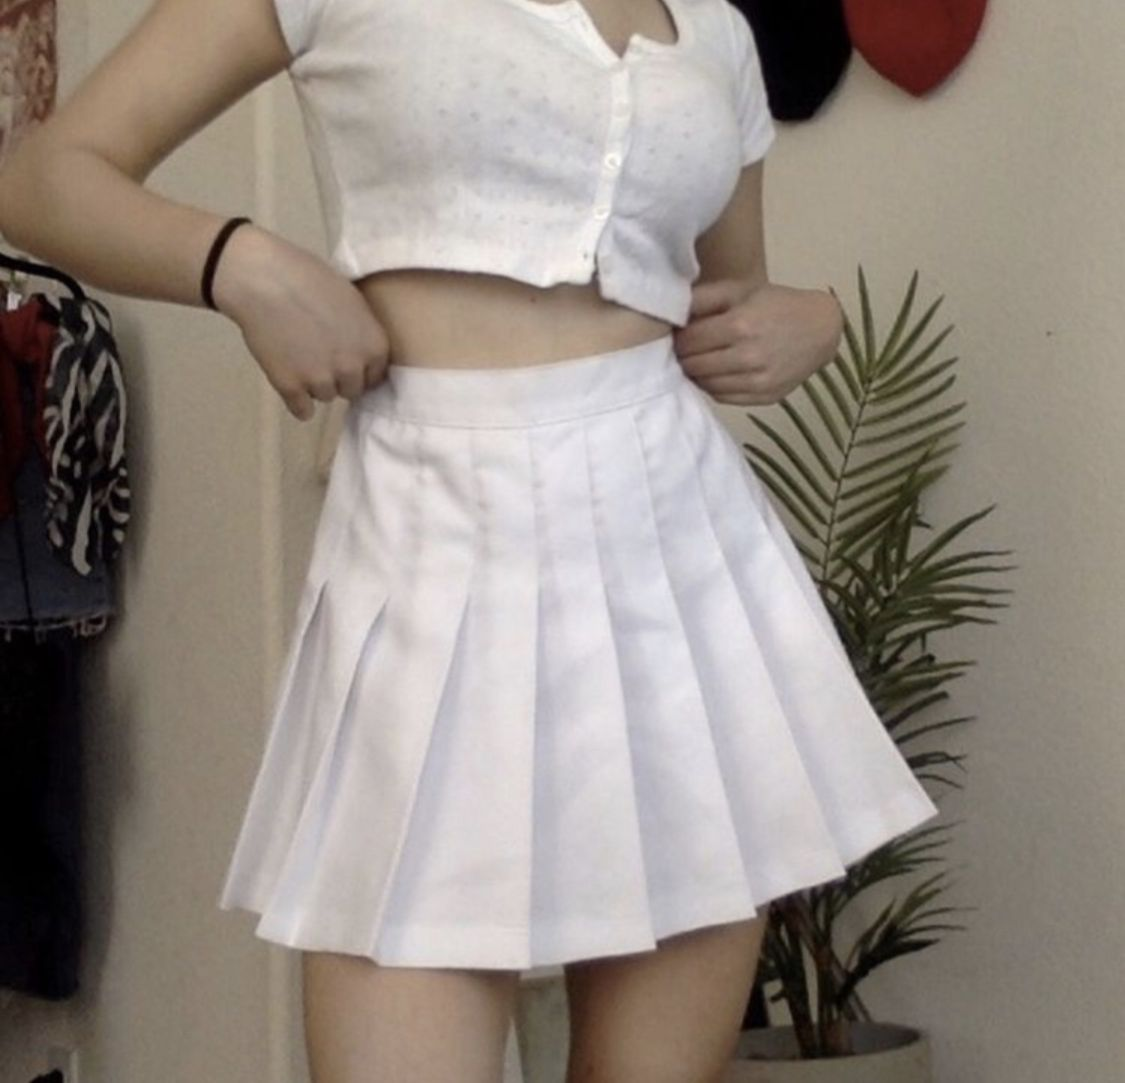 Breeze Skirt From Shop Tmp Pleated Tennis Skirt White Outfit Of The Day Ootd Egirl Style Fashion Stylish Gir Tennis Skirt Outfit Pleated Tennis Skirt Fashion